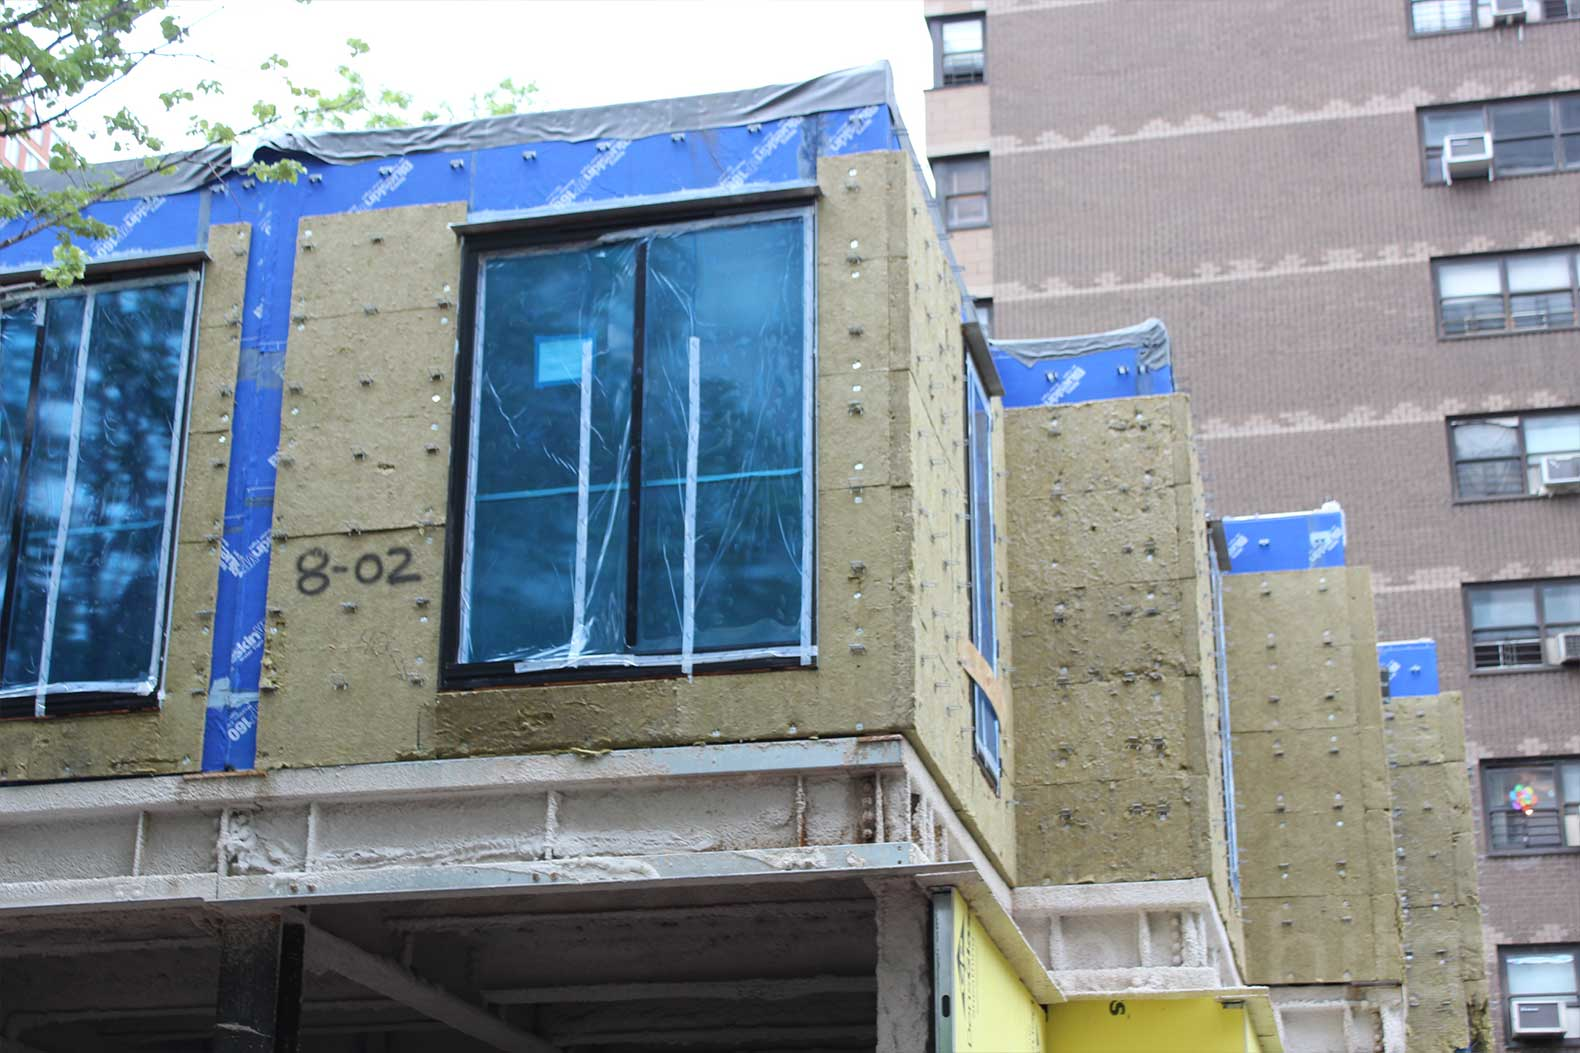 NYC's first prefab micro-unit apartment building starts to rise in Manhattan (PHOTOS)